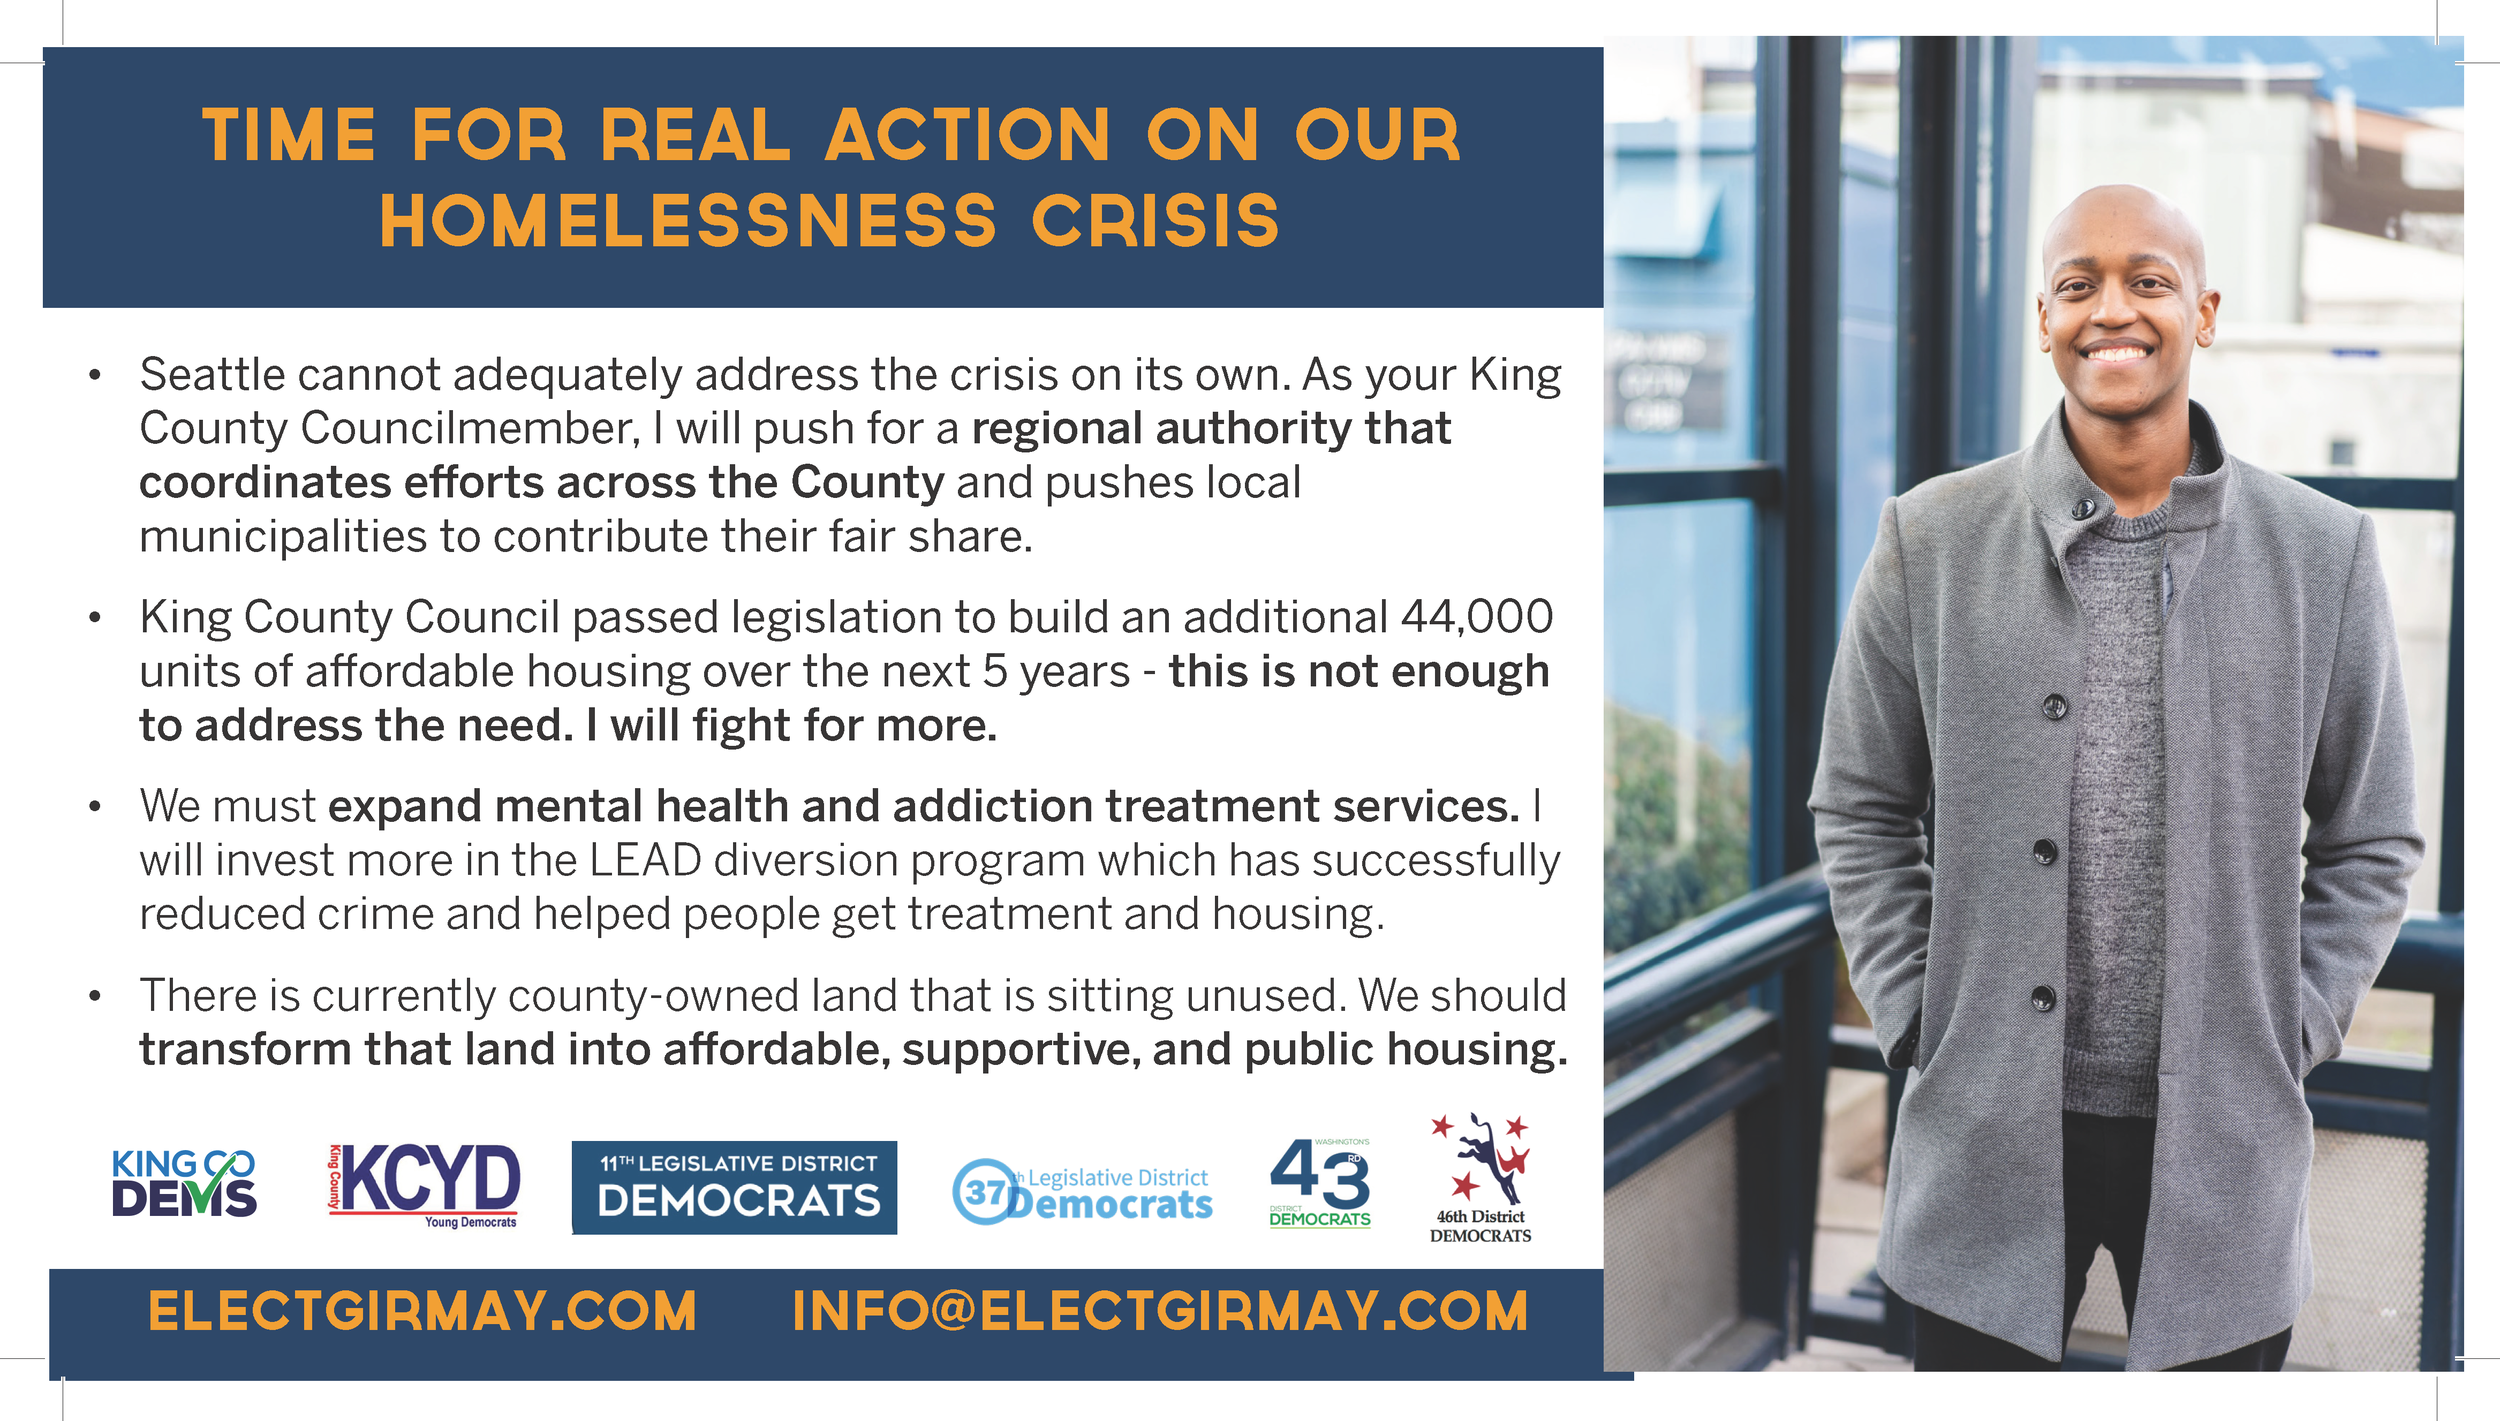 Girmay Zahilay for King County Council